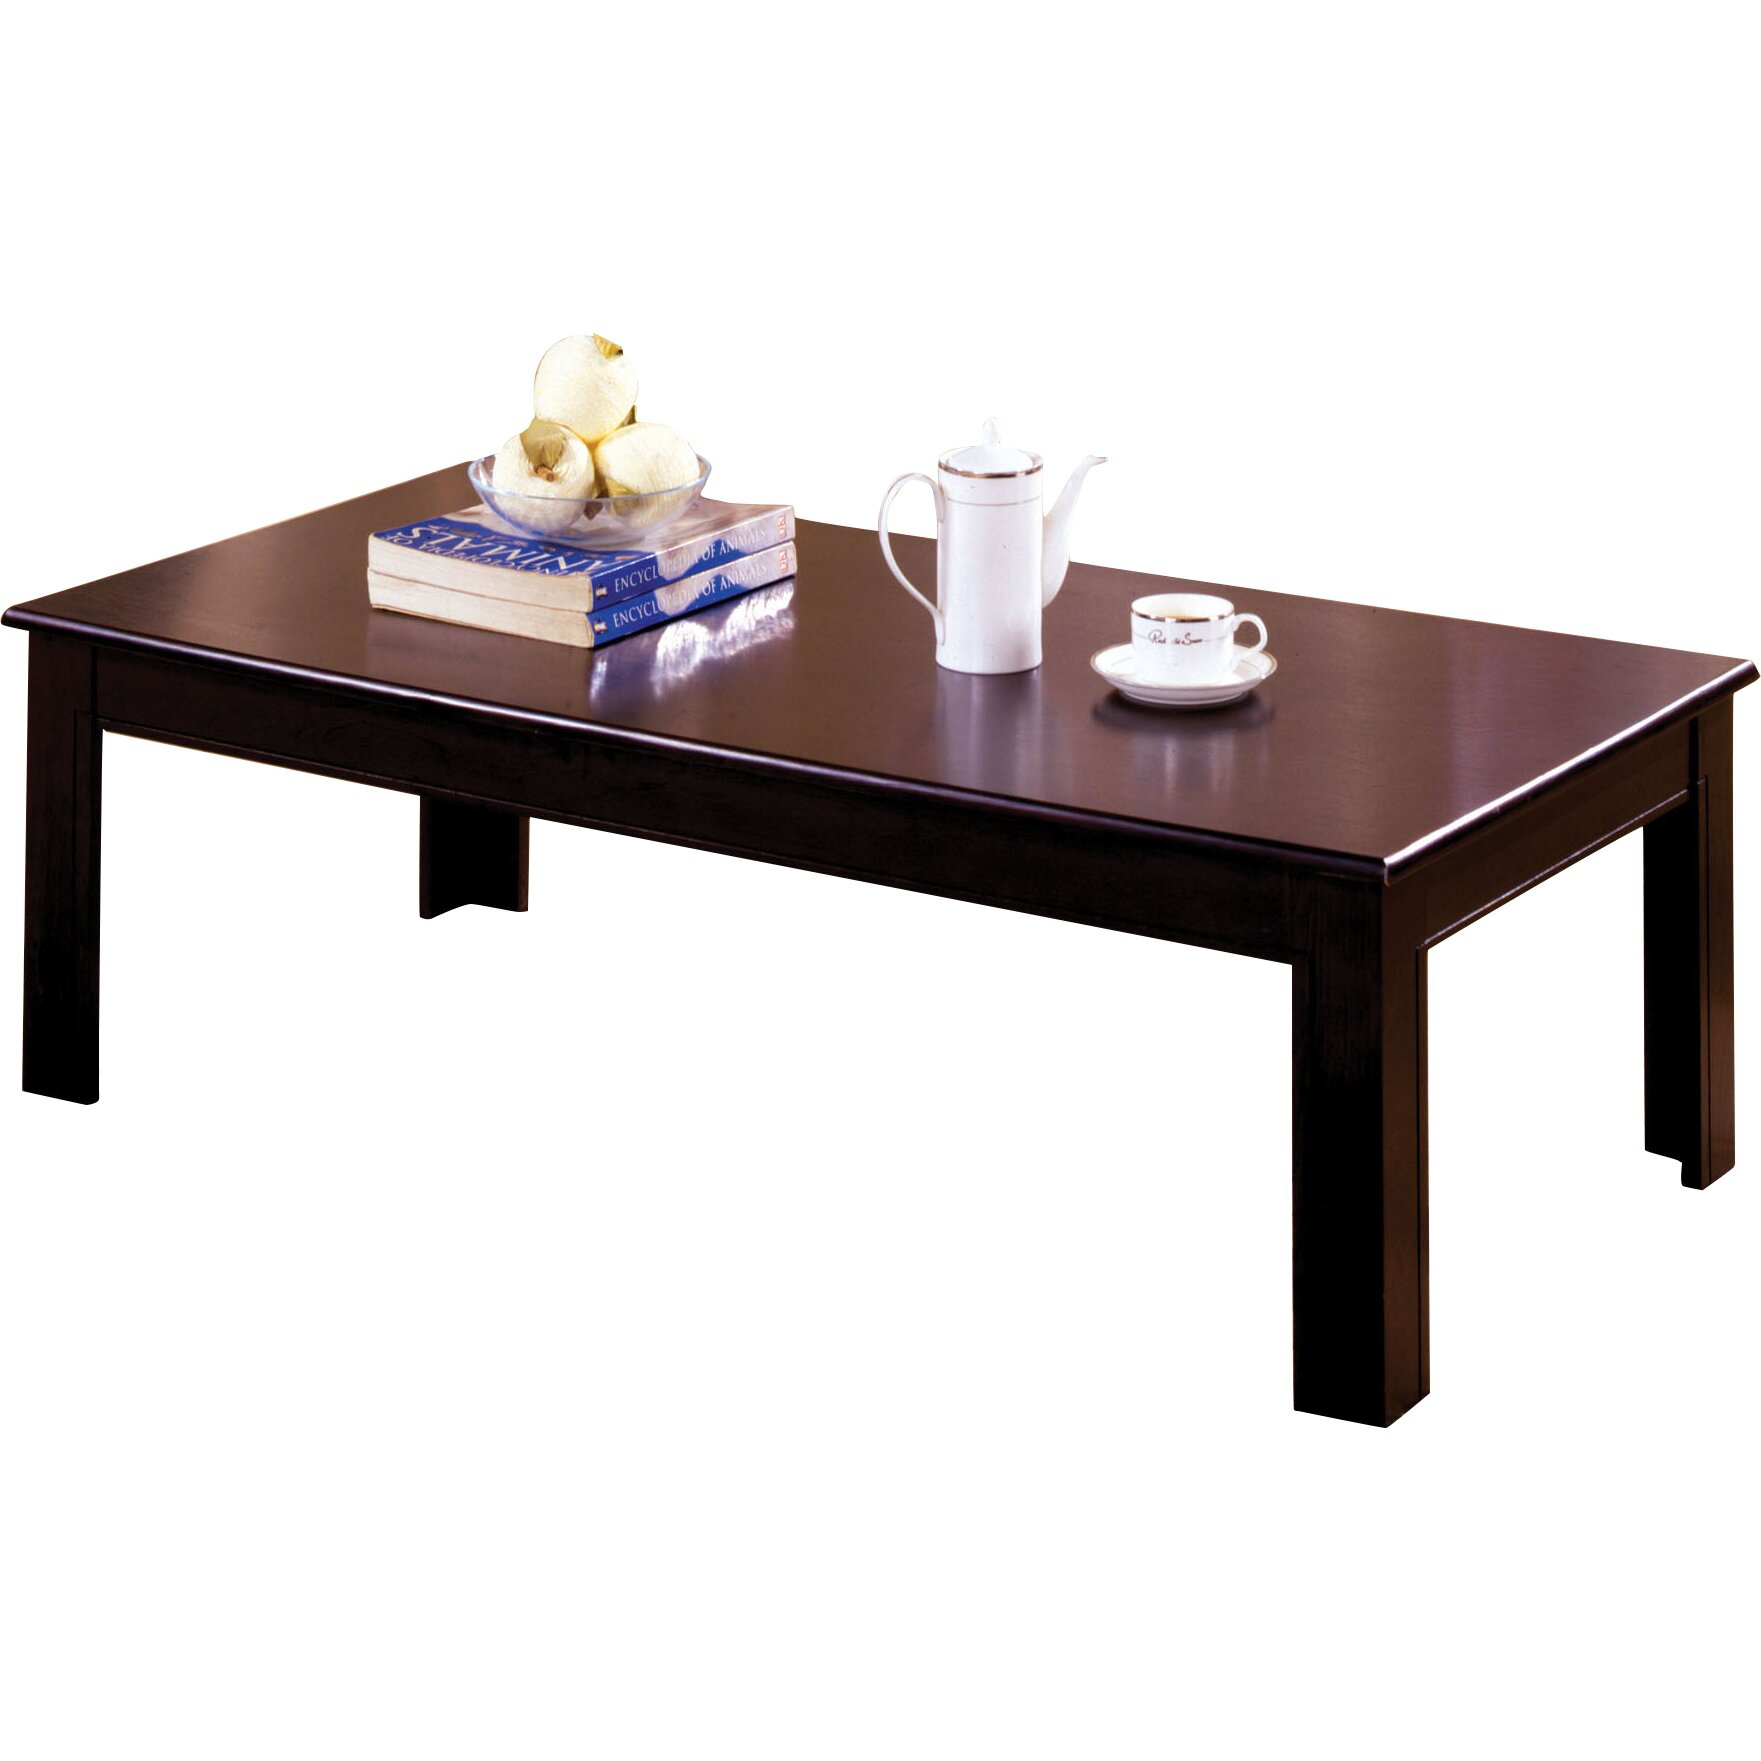 Hokku designs frixe 3 piece coffee table set reviews wayfair One piece glass coffee table